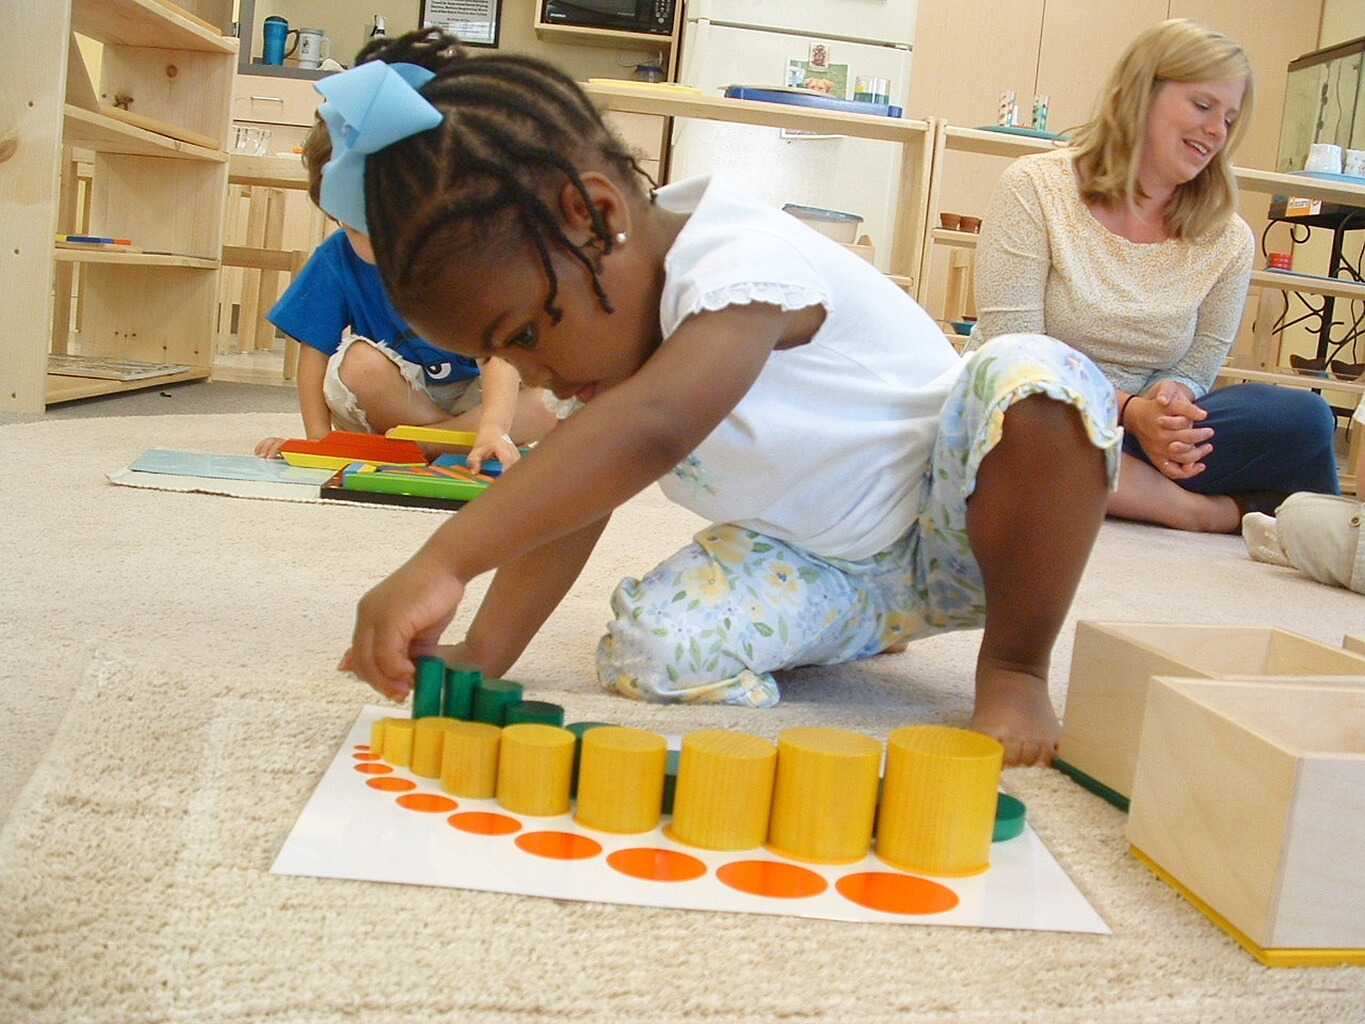 the importance of quality education the montessori method Skills that were selected for importance in life, not to examine specific expected effects  evaluating montessori education  the montessori method.